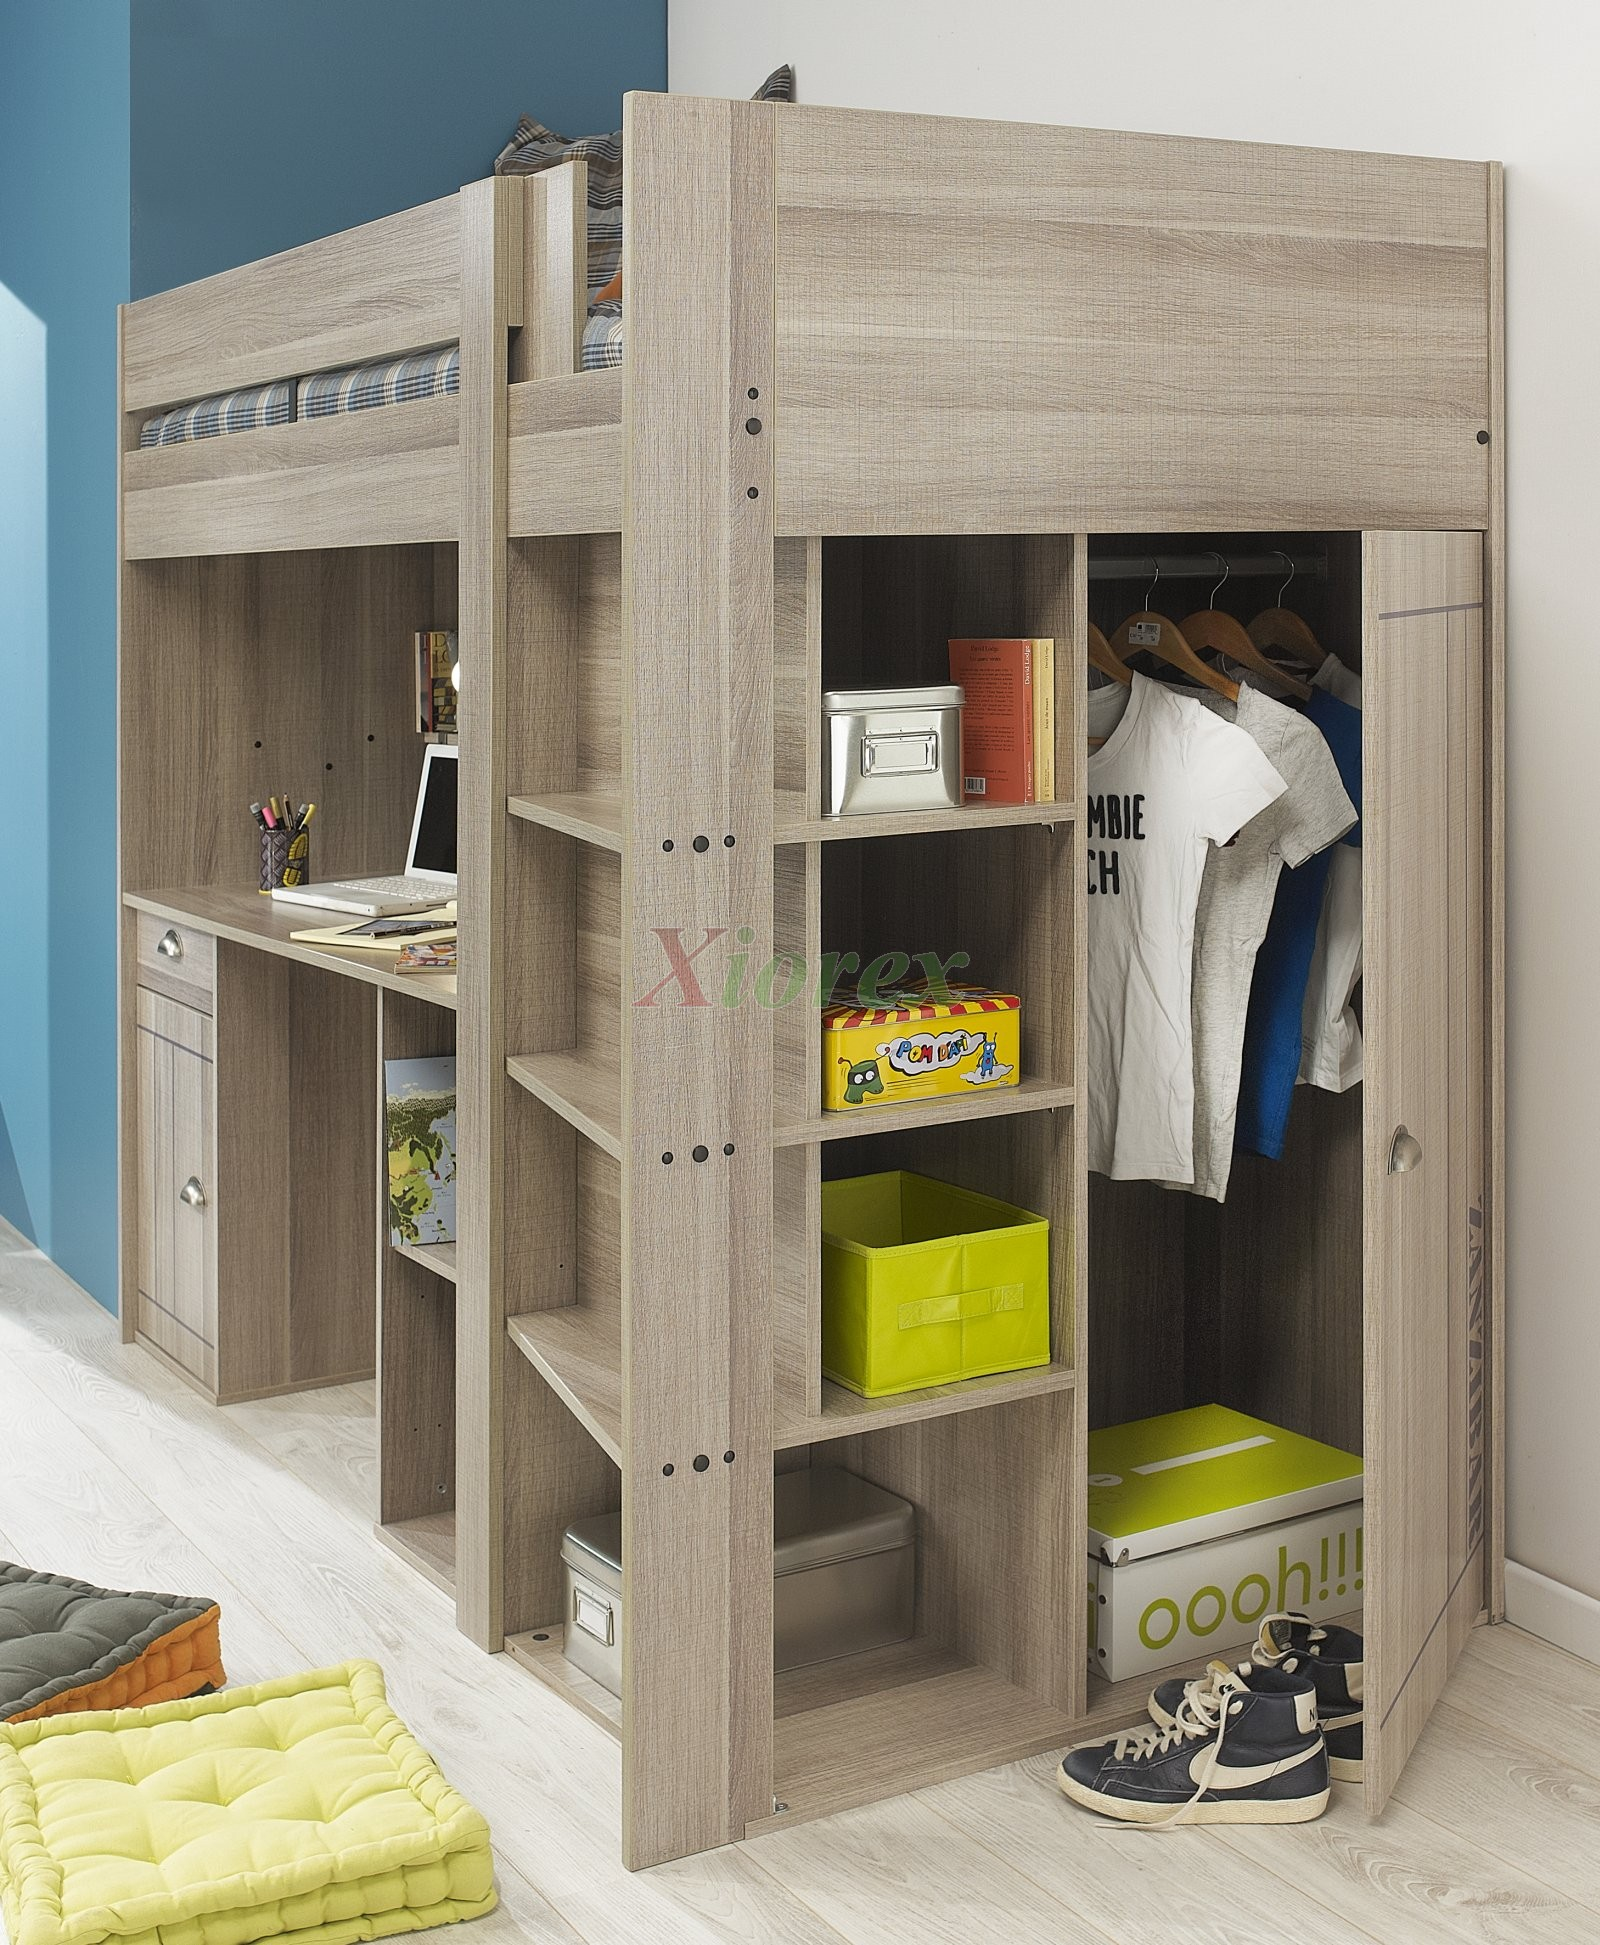 Picture of: Gami Largo Loft Beds For Teens Canada With Desk Closet Xiorex